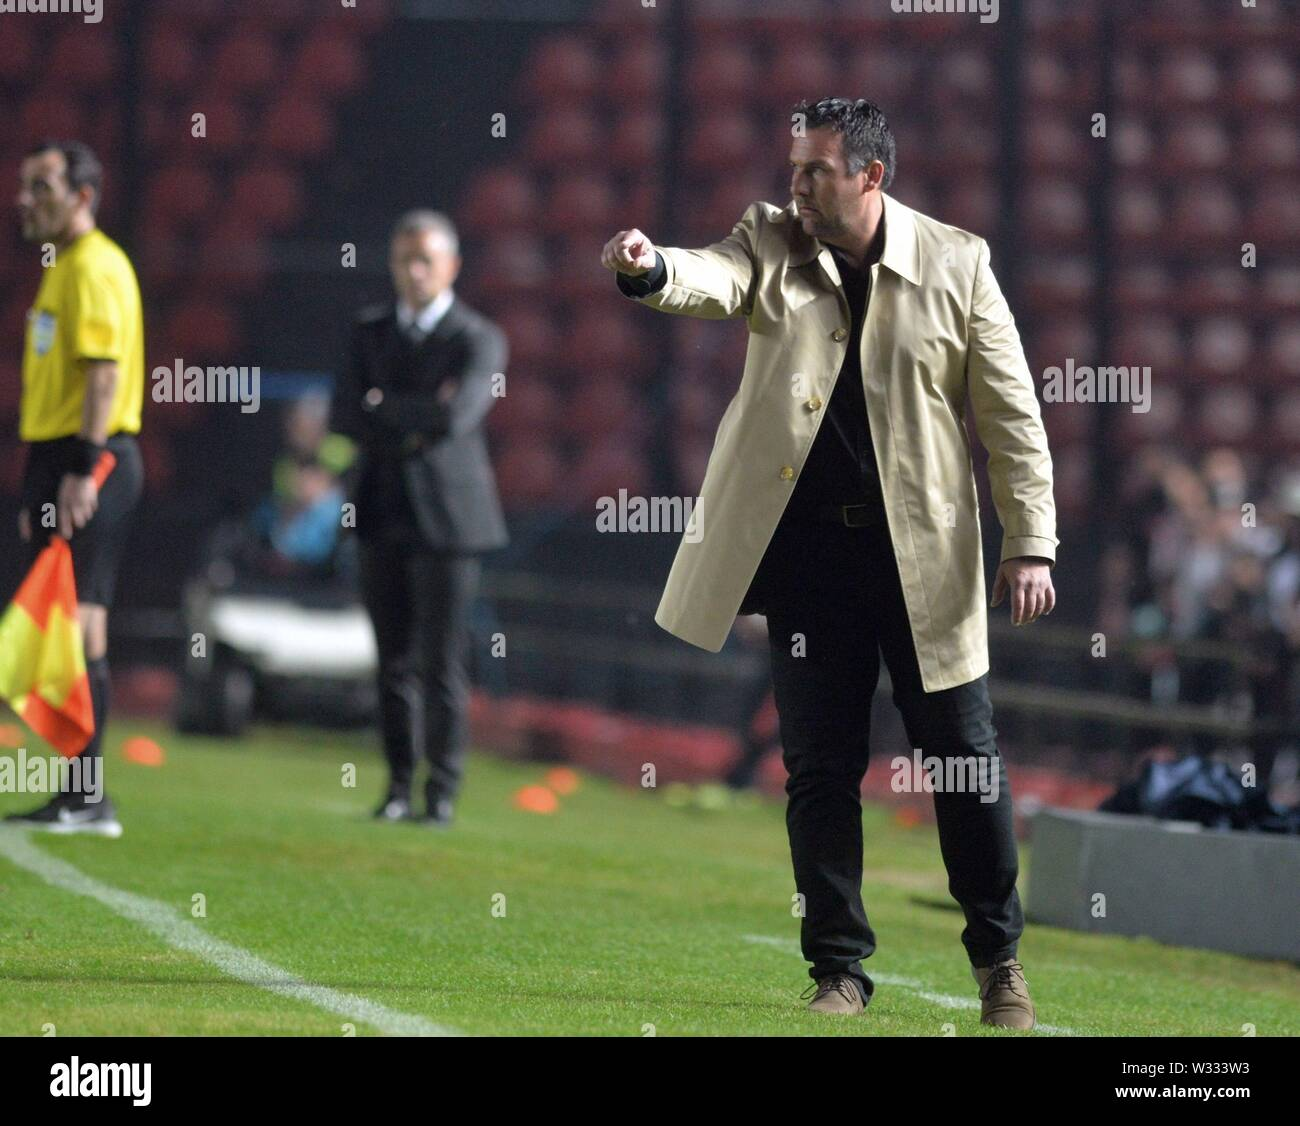 Santa Fe, Argentina. 12th July, 2019. The coach of Argentinos Juniors, Diego Dabove, gives instructions during the Copa Sudamericana round of 16 first leg match between Club Atletico Colon and Asociacion Atletica Argentinos Juniors at the Brigadier General Estanislao Lopez stadium in Santa Fe, Argentina, 11 July 2019. Credit: JAVIER ESCOBAR/EFE/Alamy Live News - Stock Image